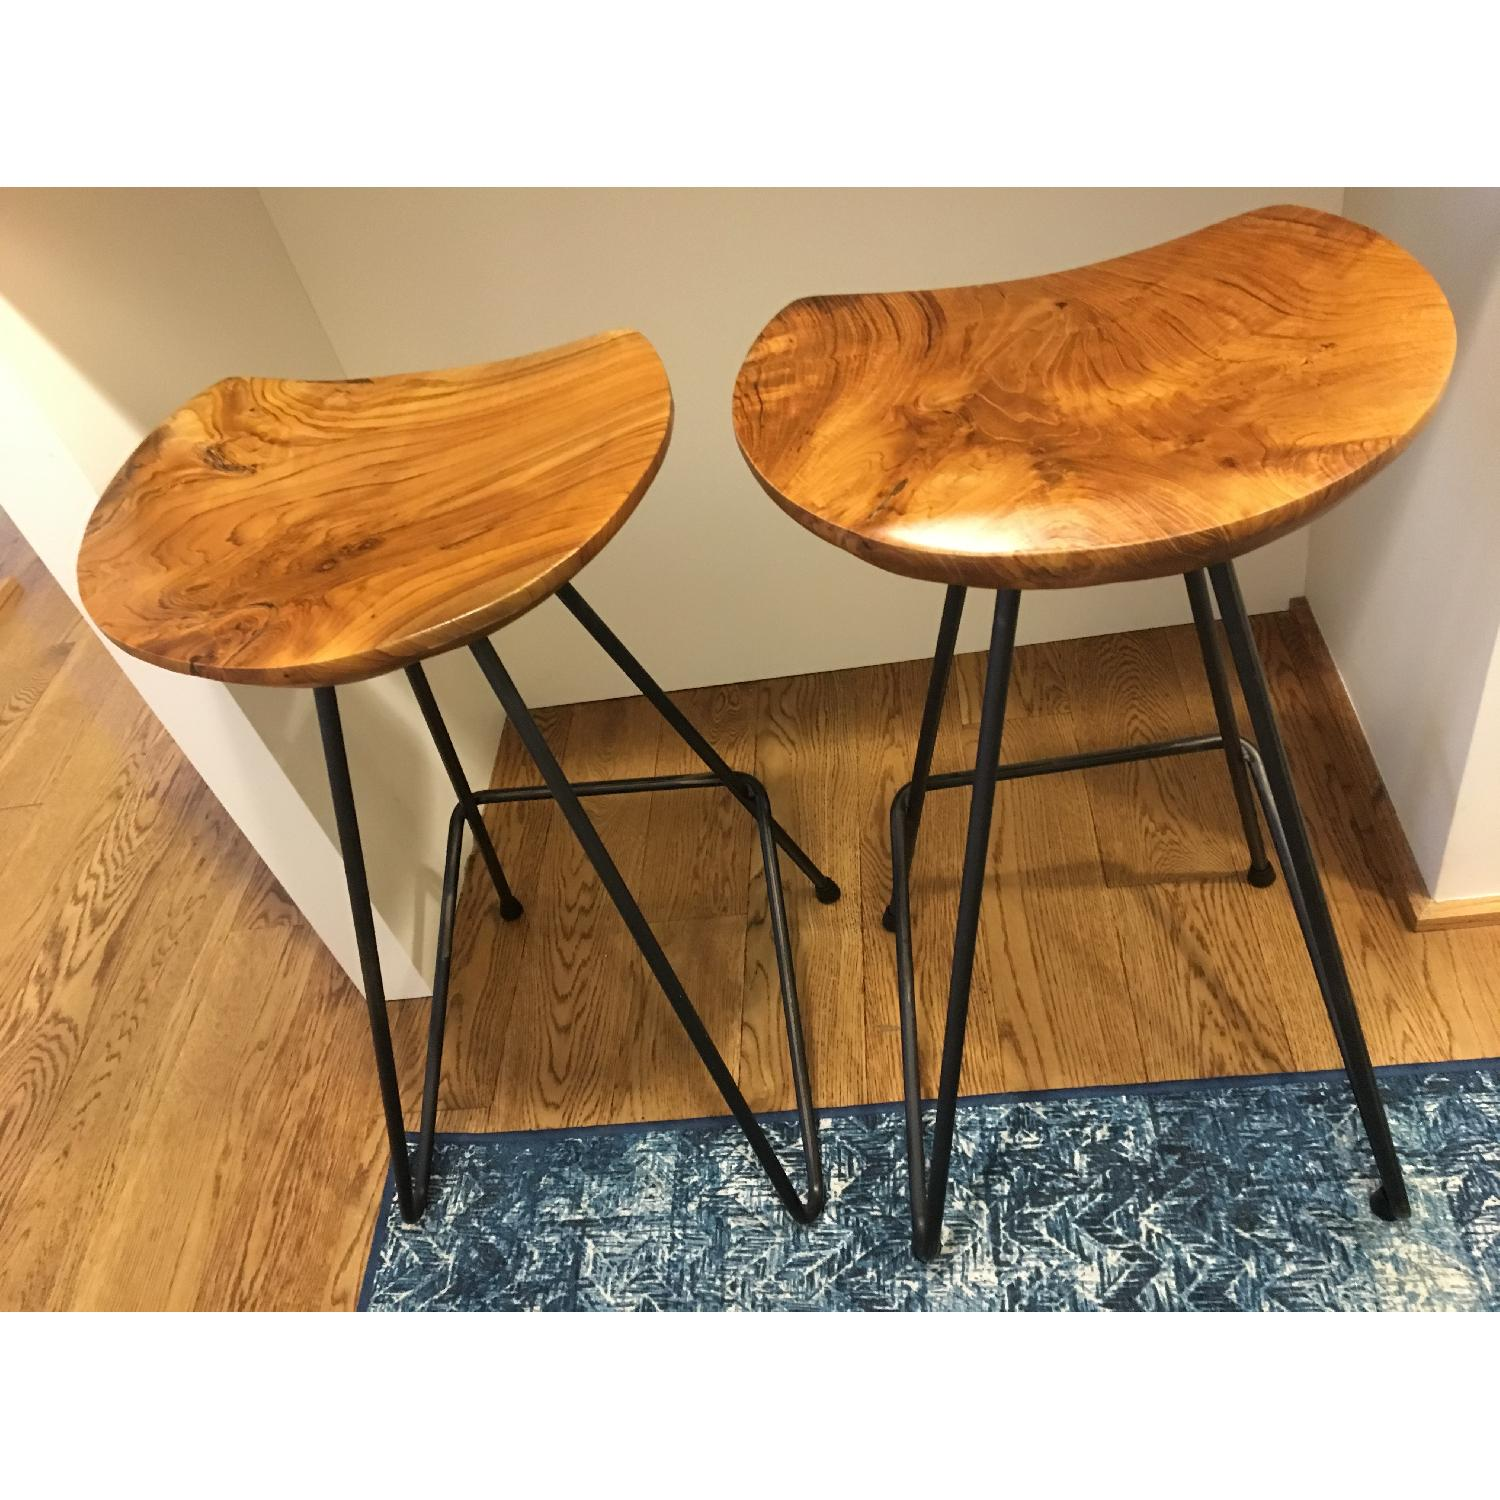 From The Source Perch Teak Bar Stool-1